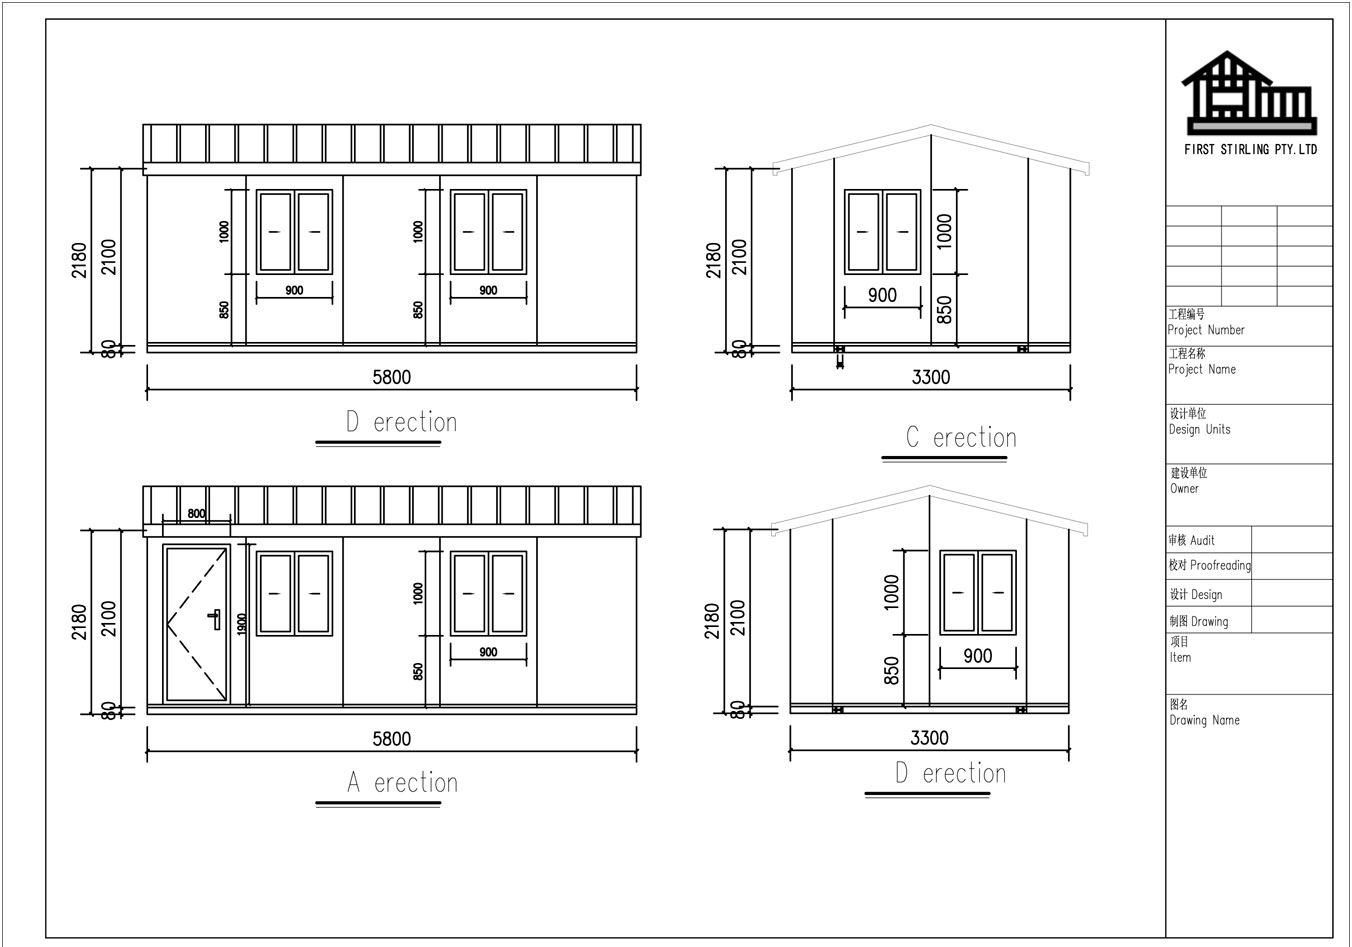 floor plan gallery image 3 part 1 2011 gx023 plan of. Black Bedroom Furniture Sets. Home Design Ideas